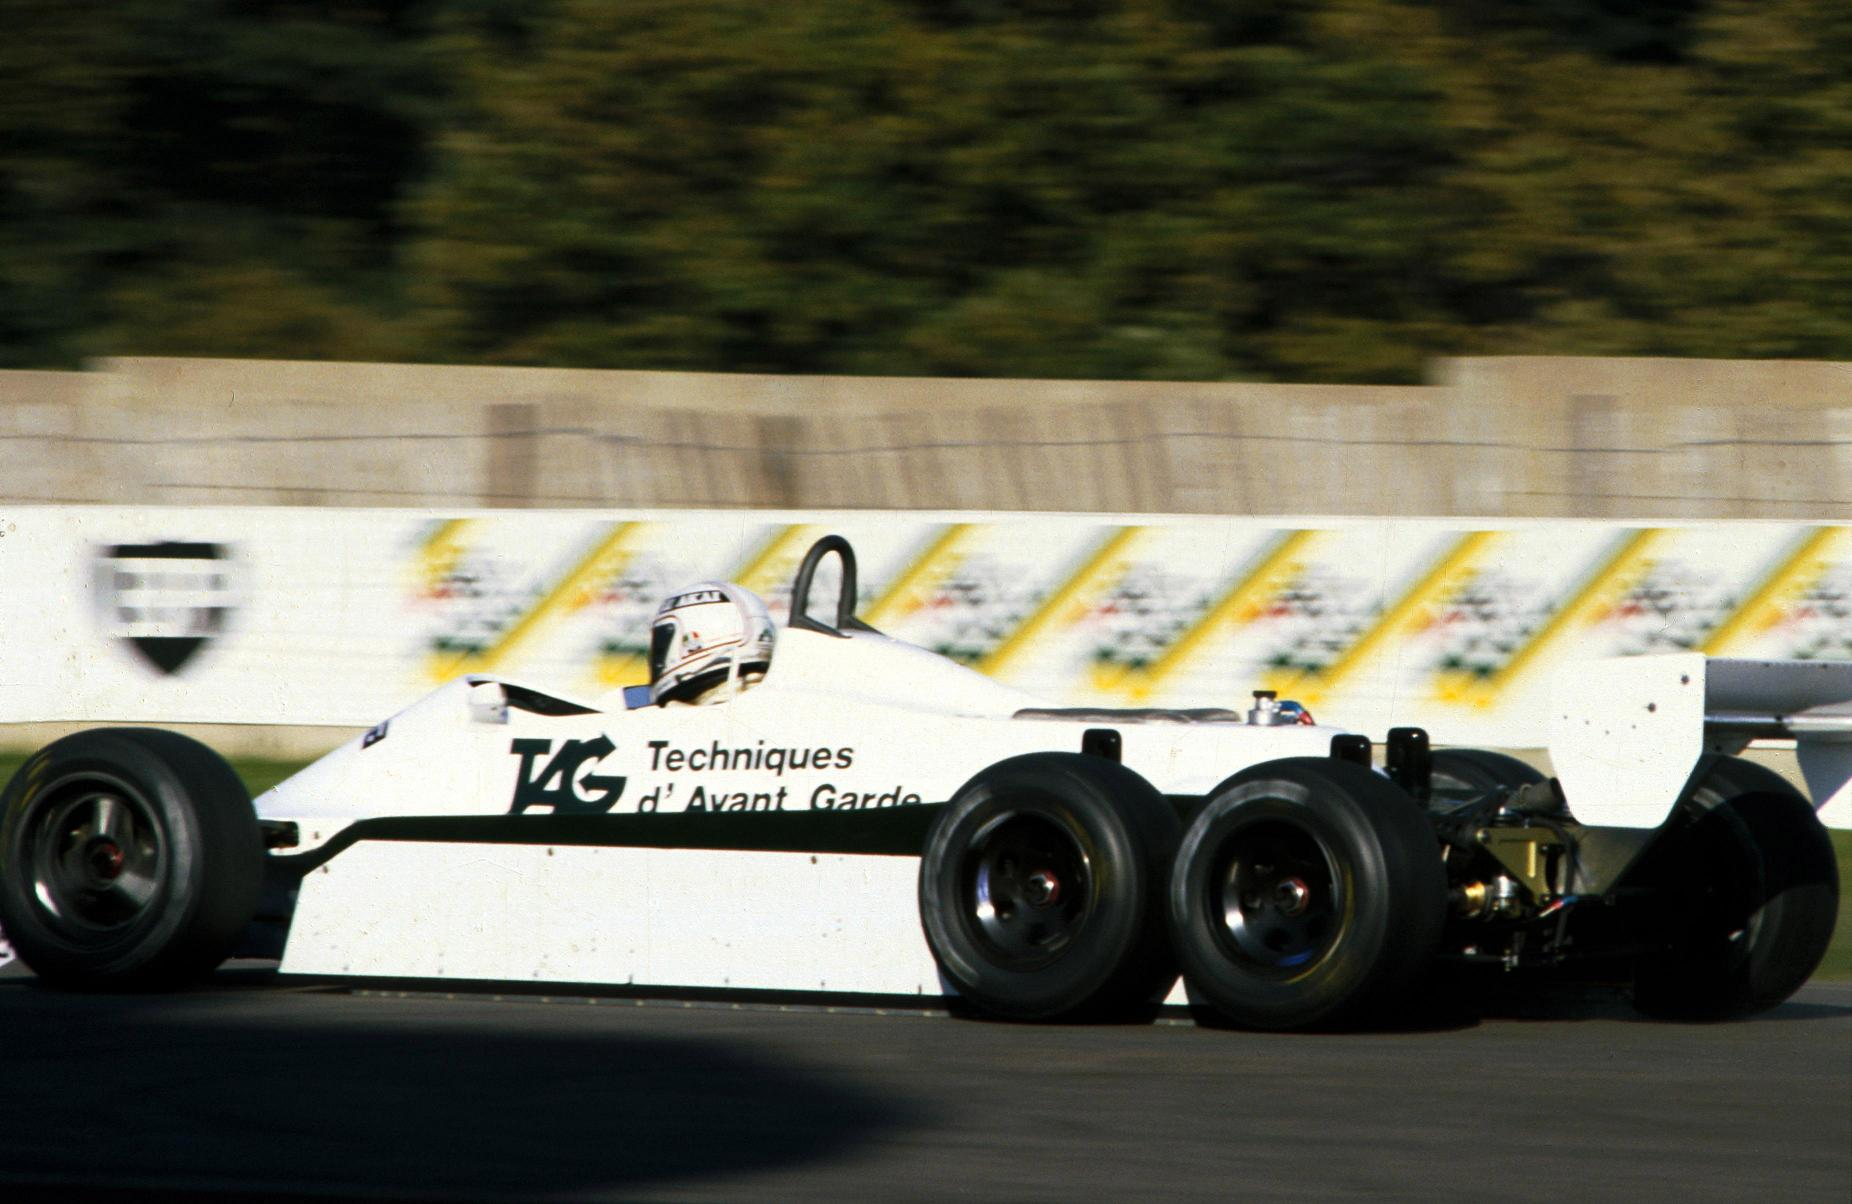 williams-1982-6 wheeler-02b.jpg